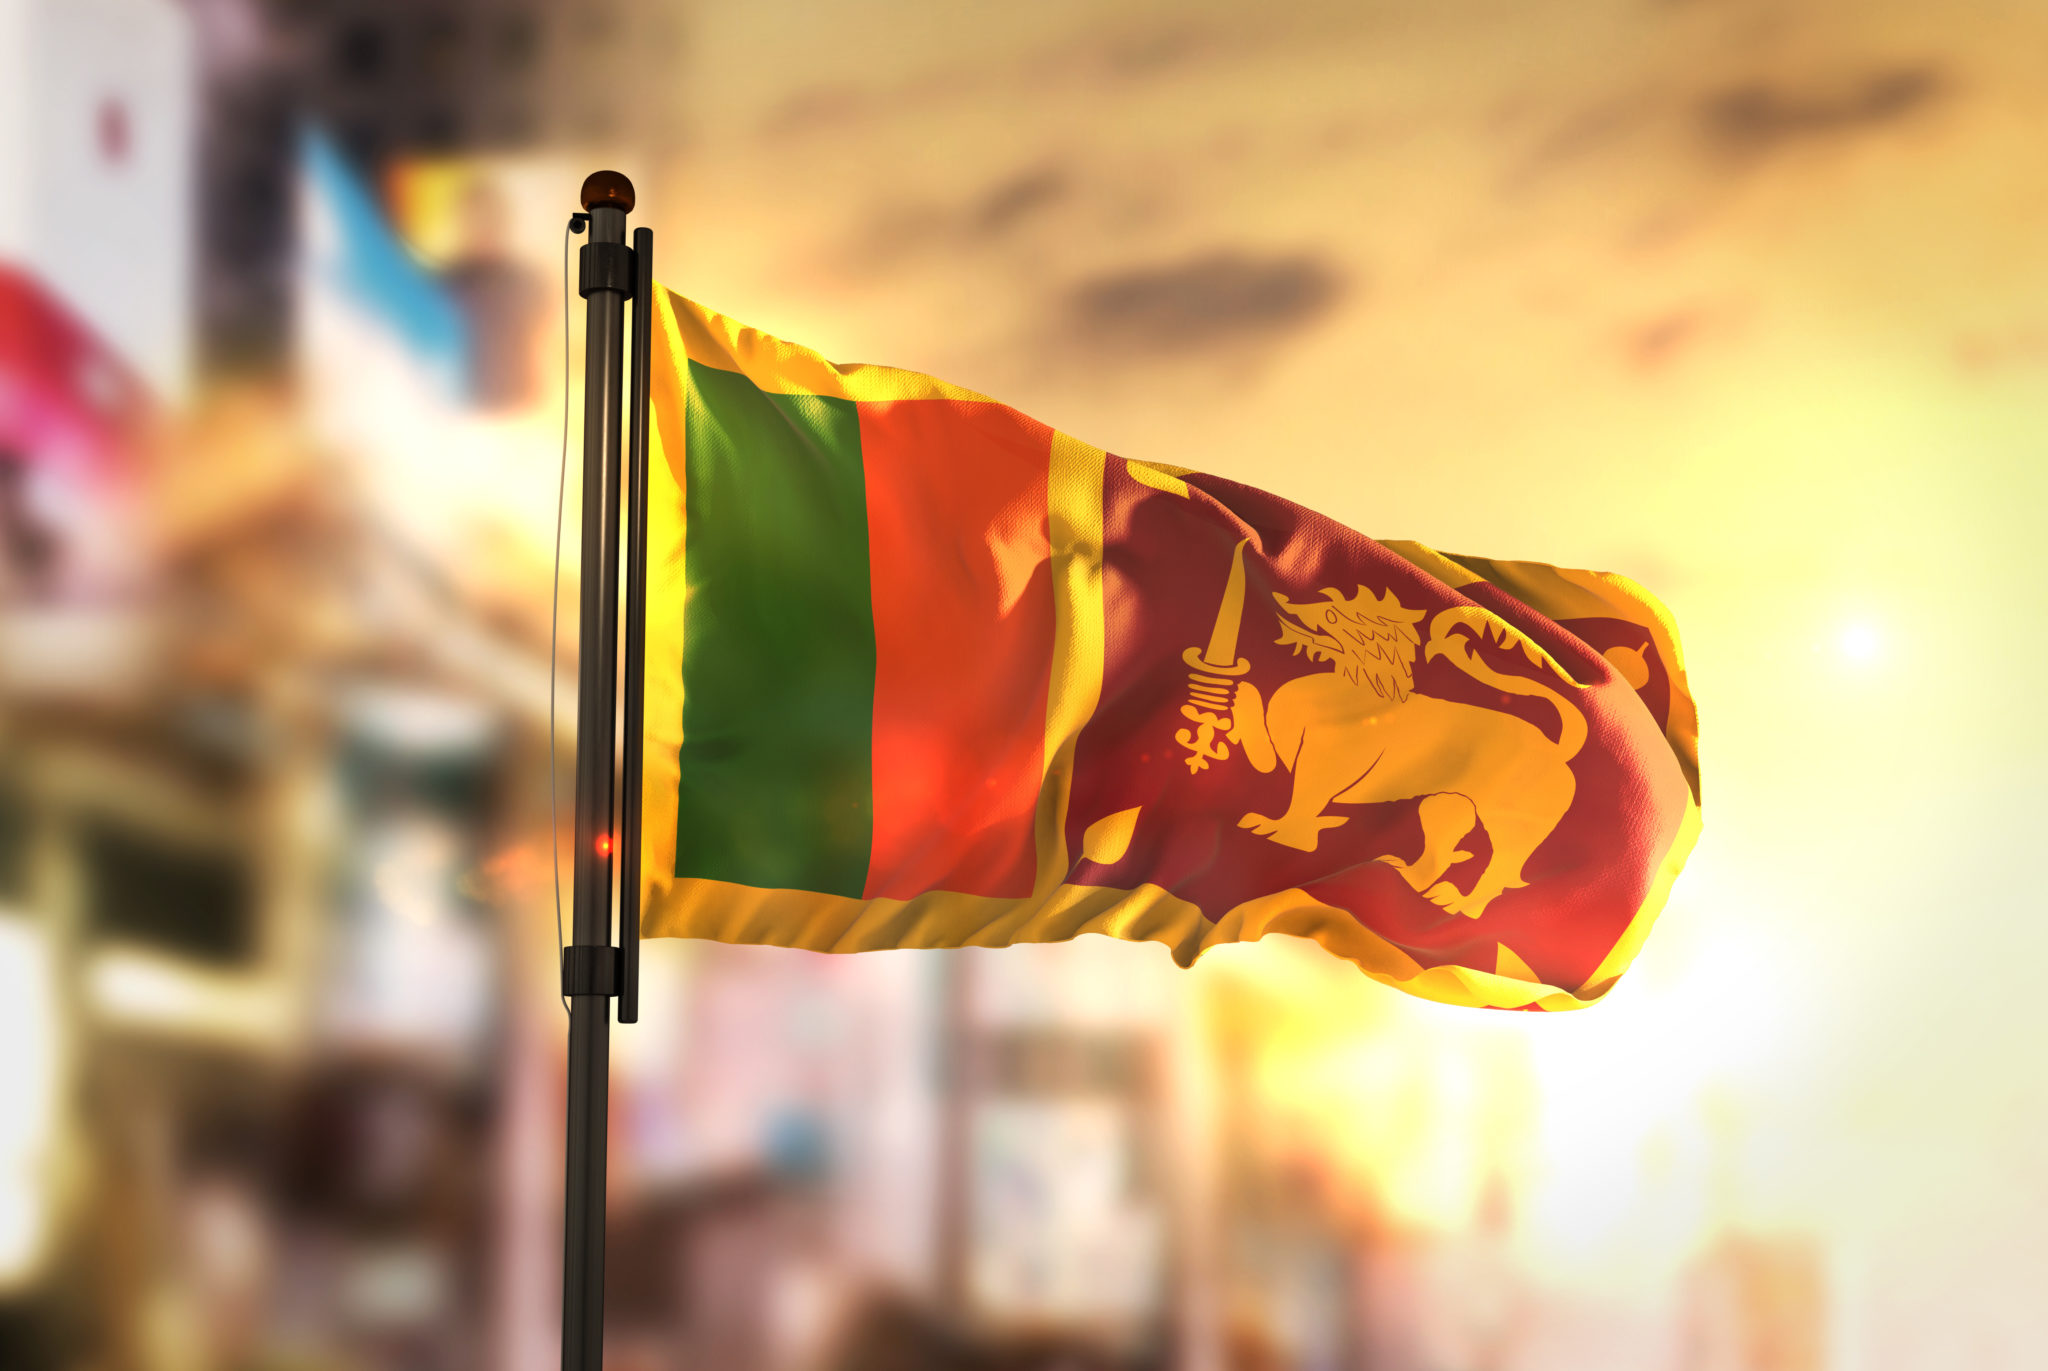 How Terror Detonated with Precision Across Sri Lanka